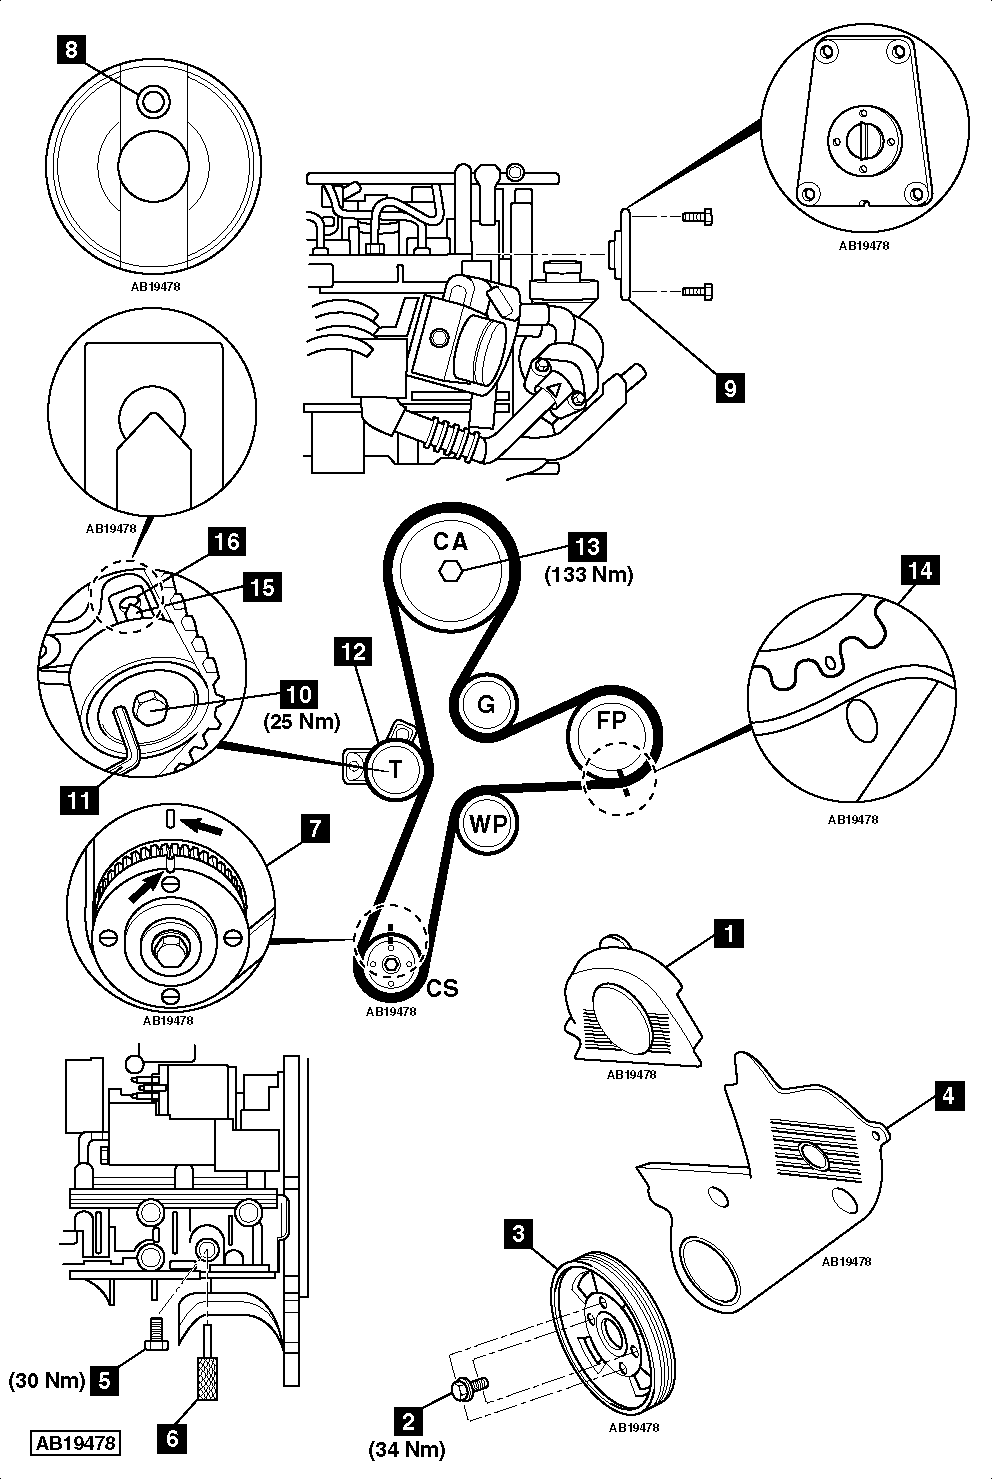 Belt Diagram 2009 Gmc Acadia Schematics Wiring Diagrams 2 0 Engine Ajuste De Motor Marcas Distribuci U00f3n Chevrolet Cruze Cdi F150